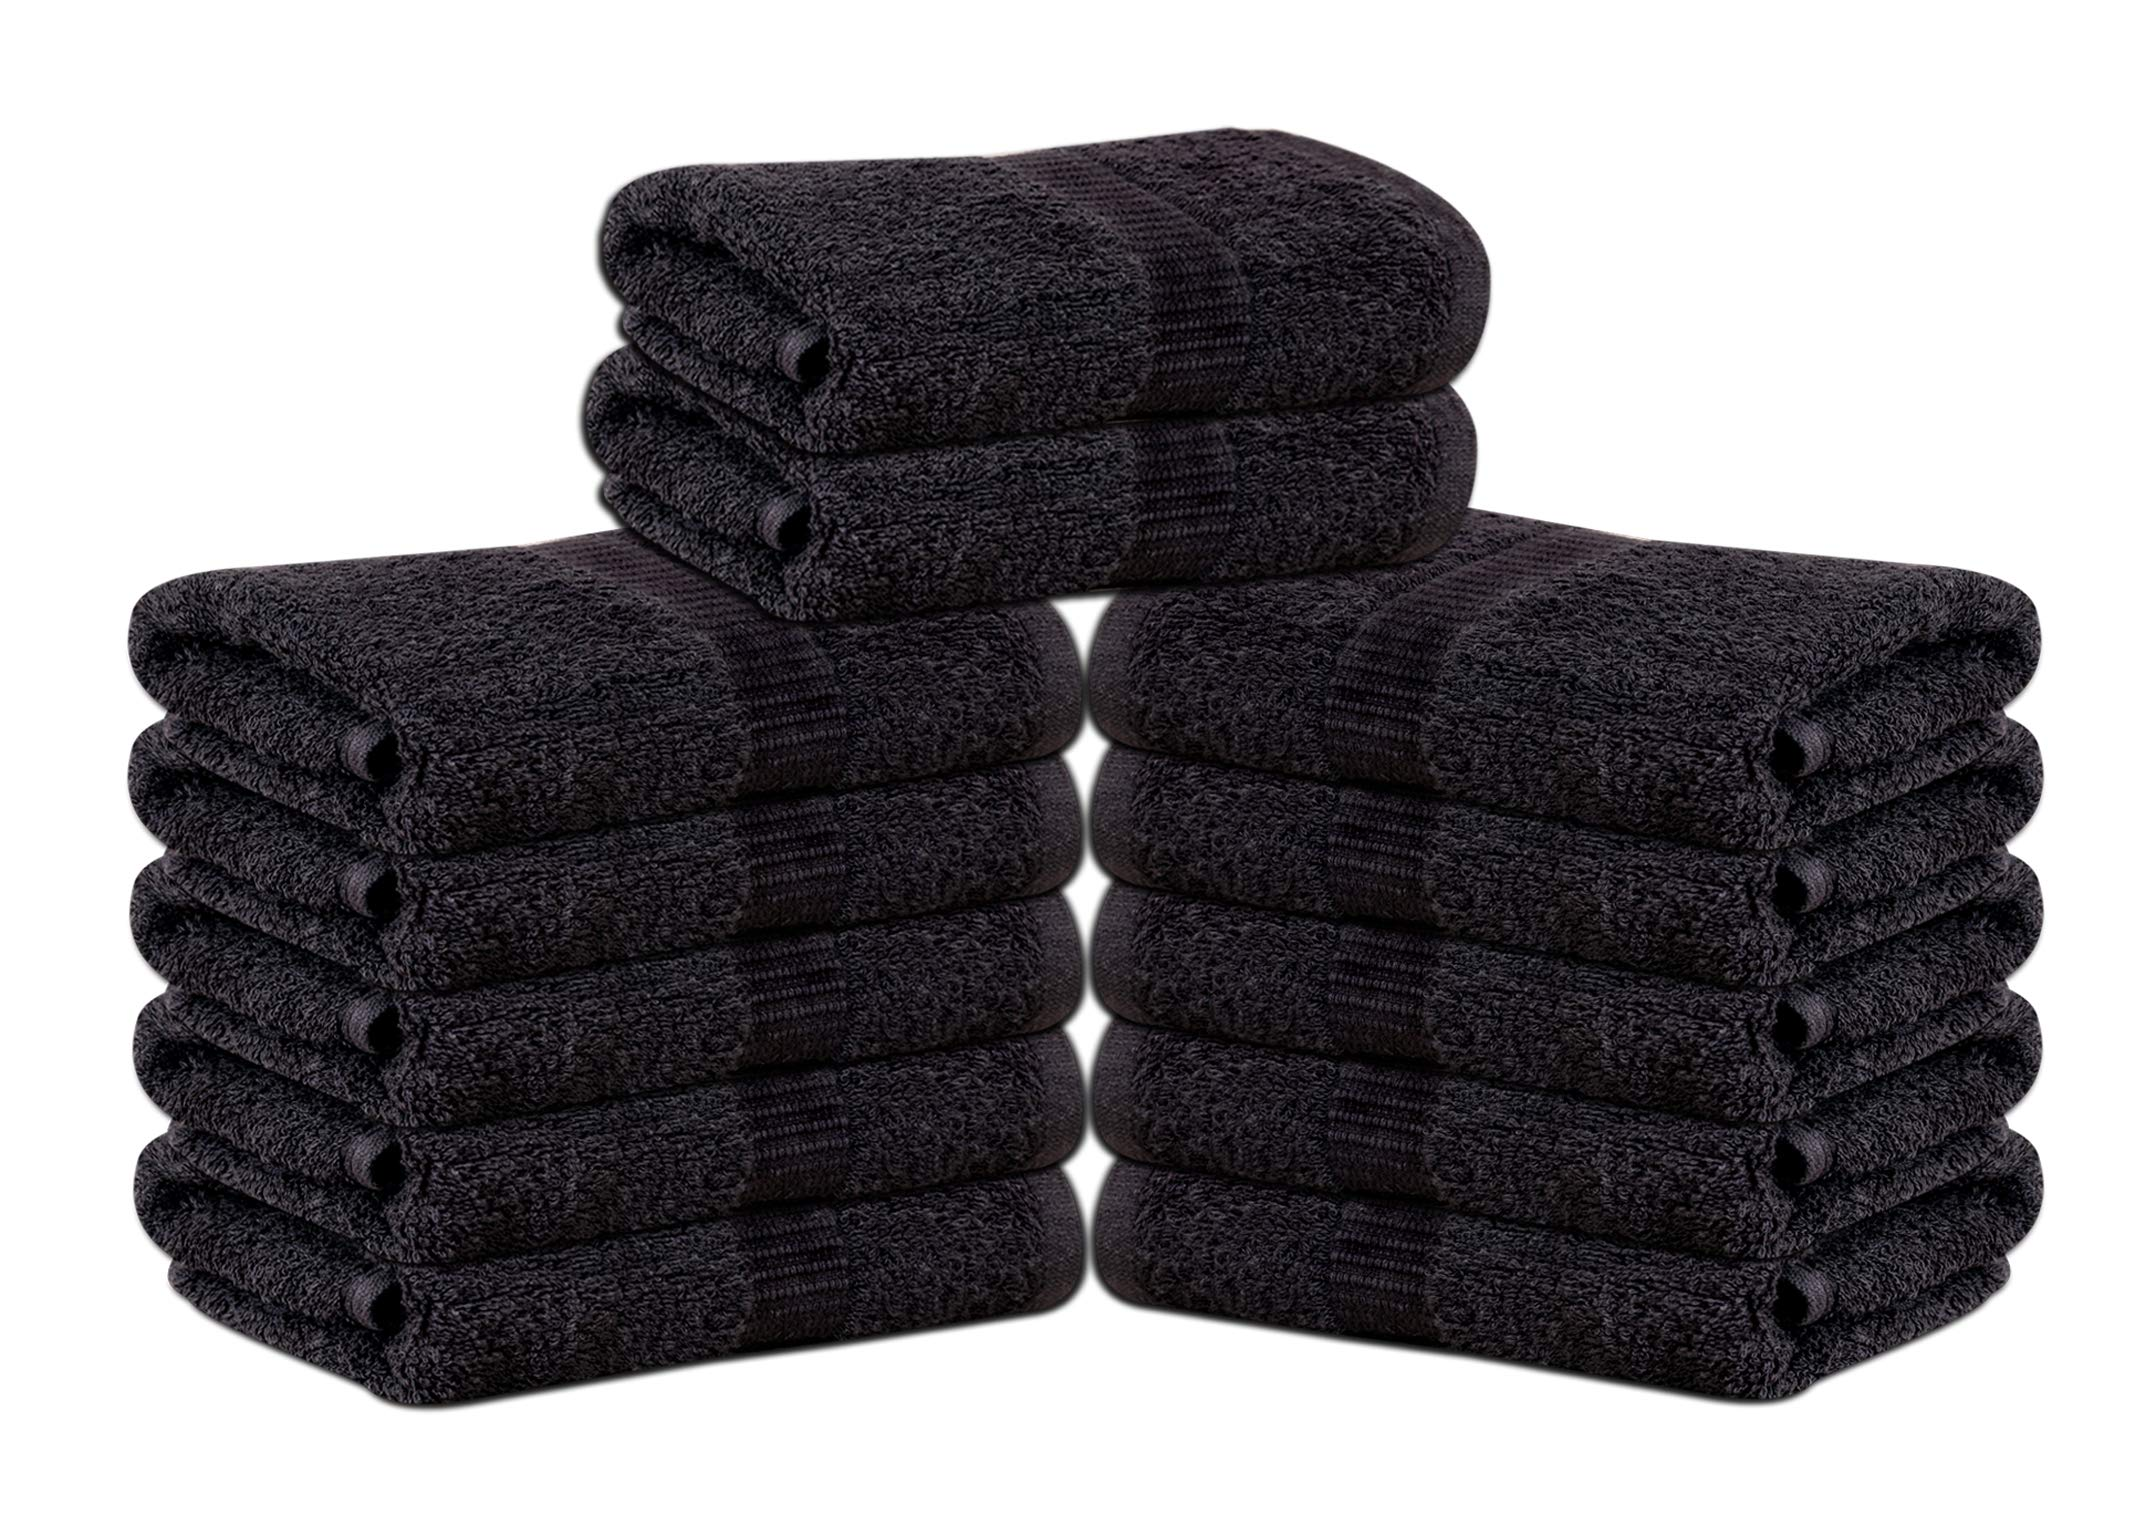 GOLD TEXTILES Premium Hotel Quality Large Hand Towels (12 Pack,Black,16''x30'') - Luxury Salon Towels- Multipurpose Use for Bath, Hand, Face, Gym and Spa -Soft, Thick & Highly Absorbent (12, Black) by GOLD TEXTILES